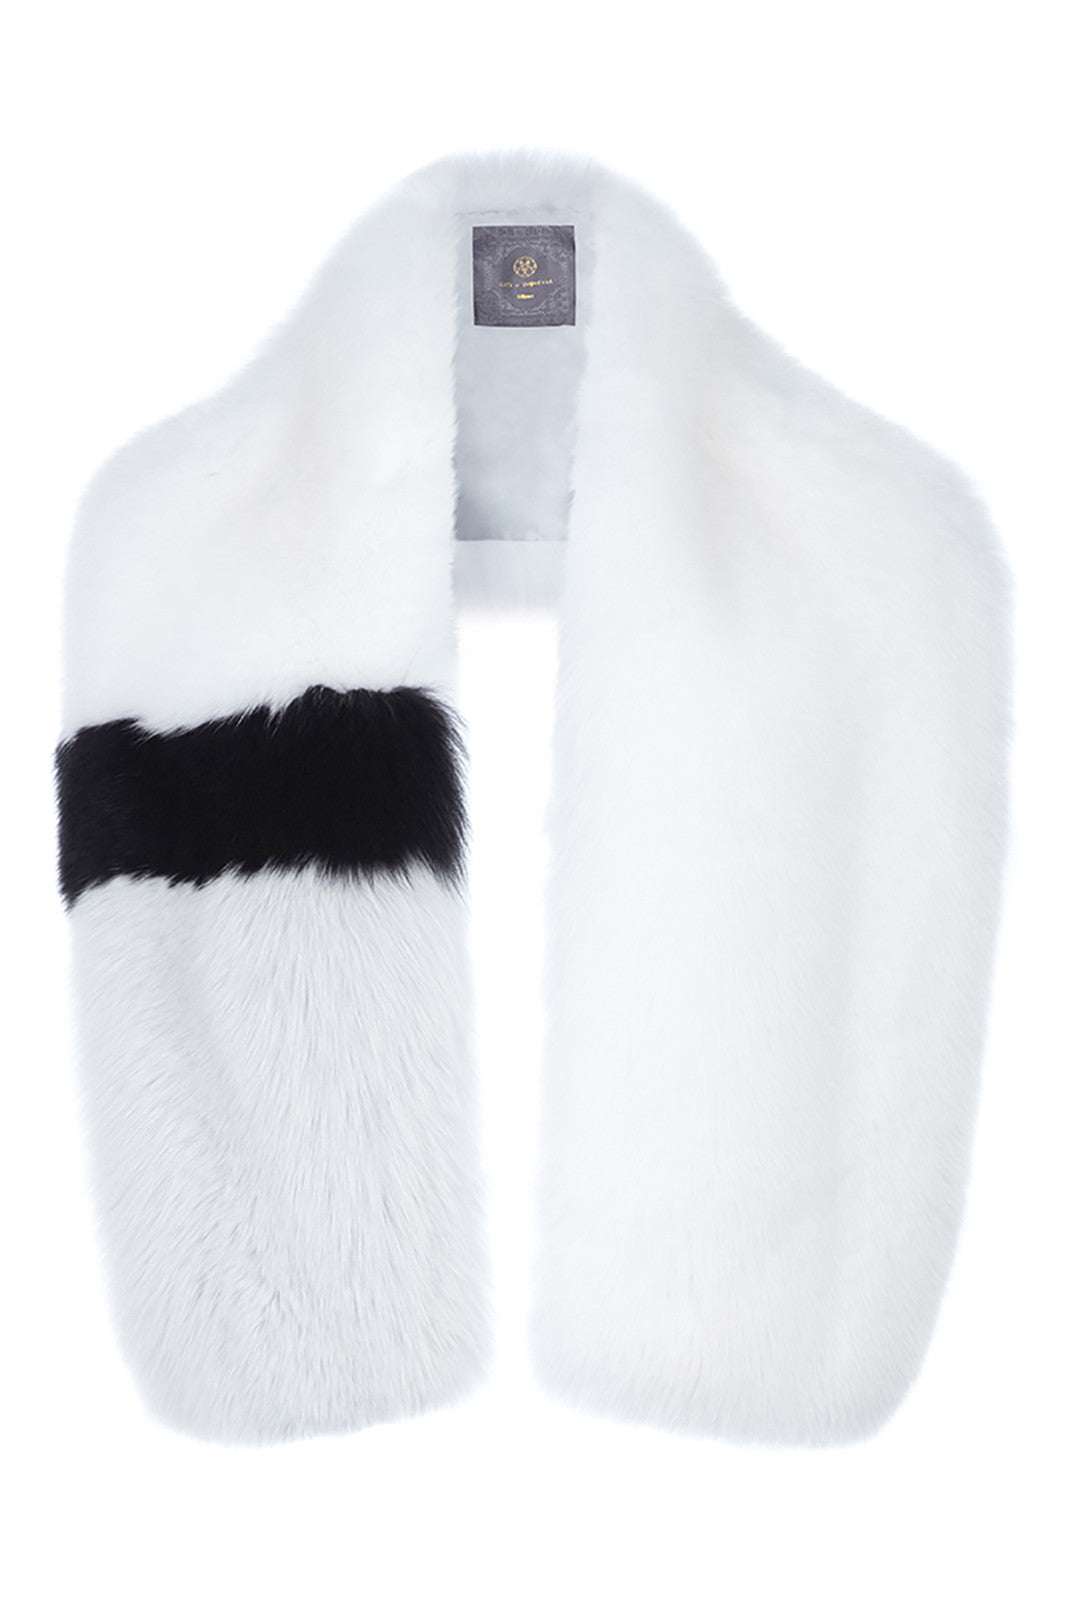 arabella womens striped fox fur scarf White & Black Striped Fox